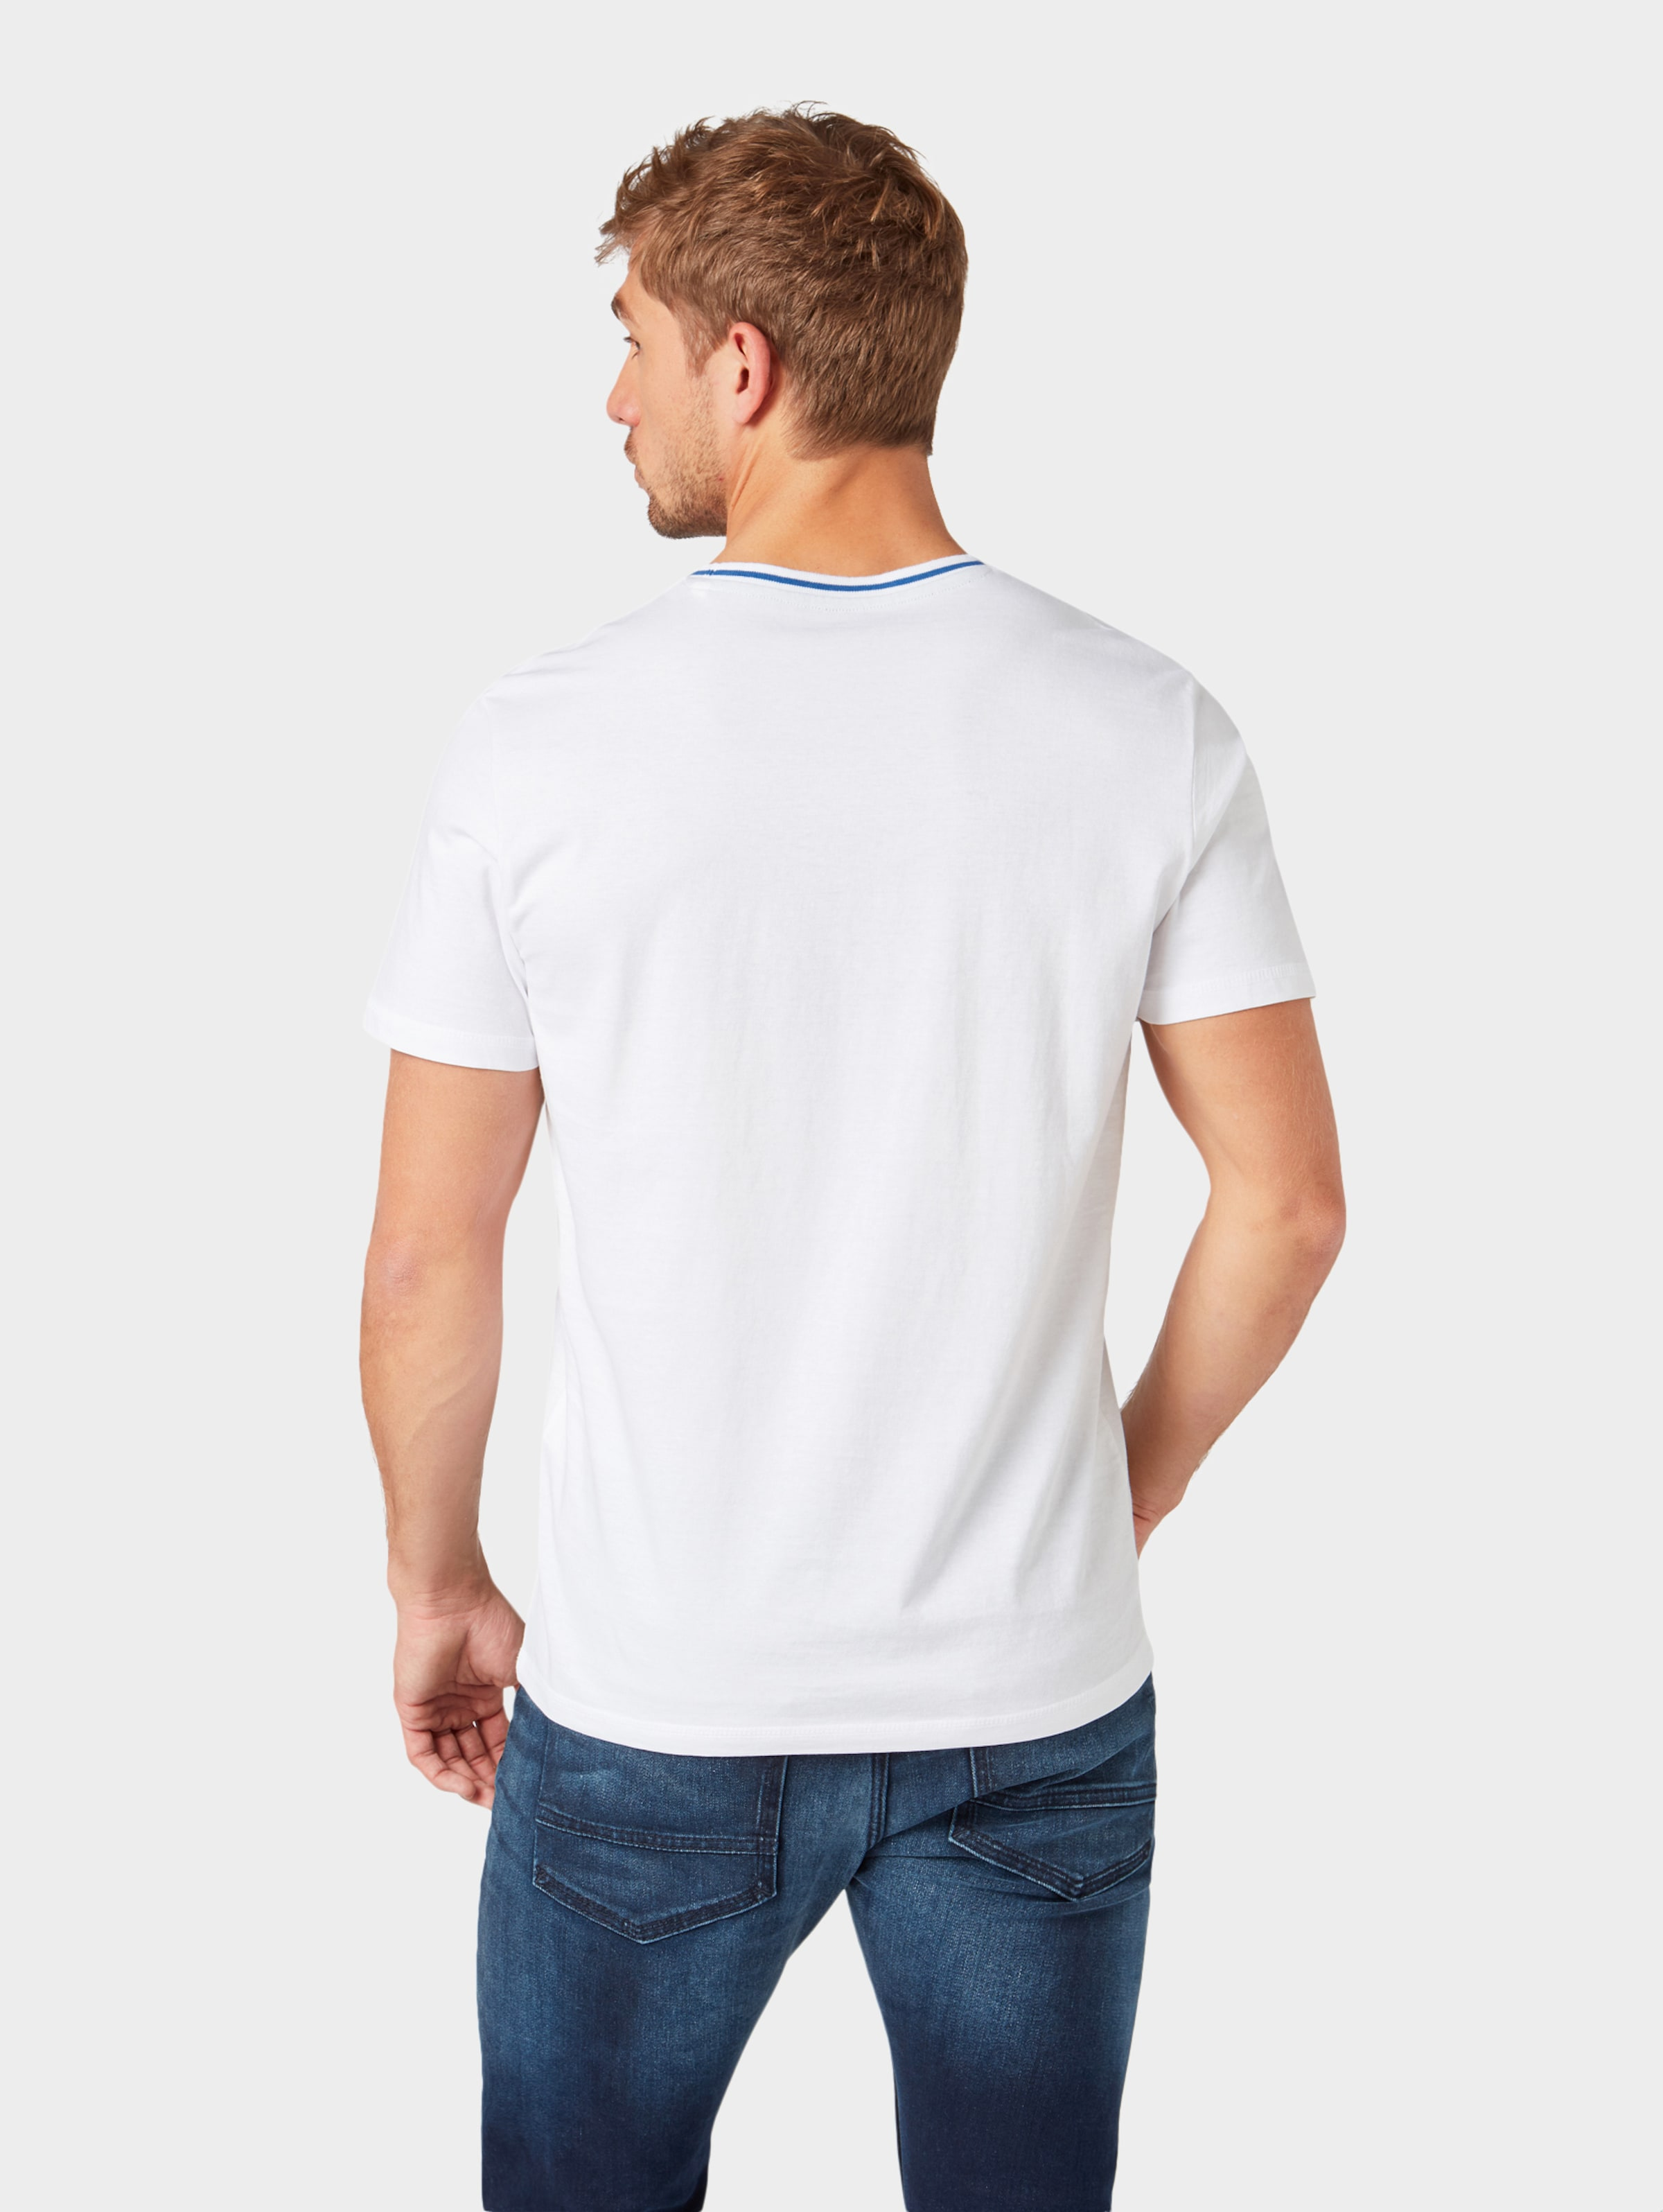 T Tom shirt HimmelblauTaupe In Weiß Tailor wN0Ov8nm